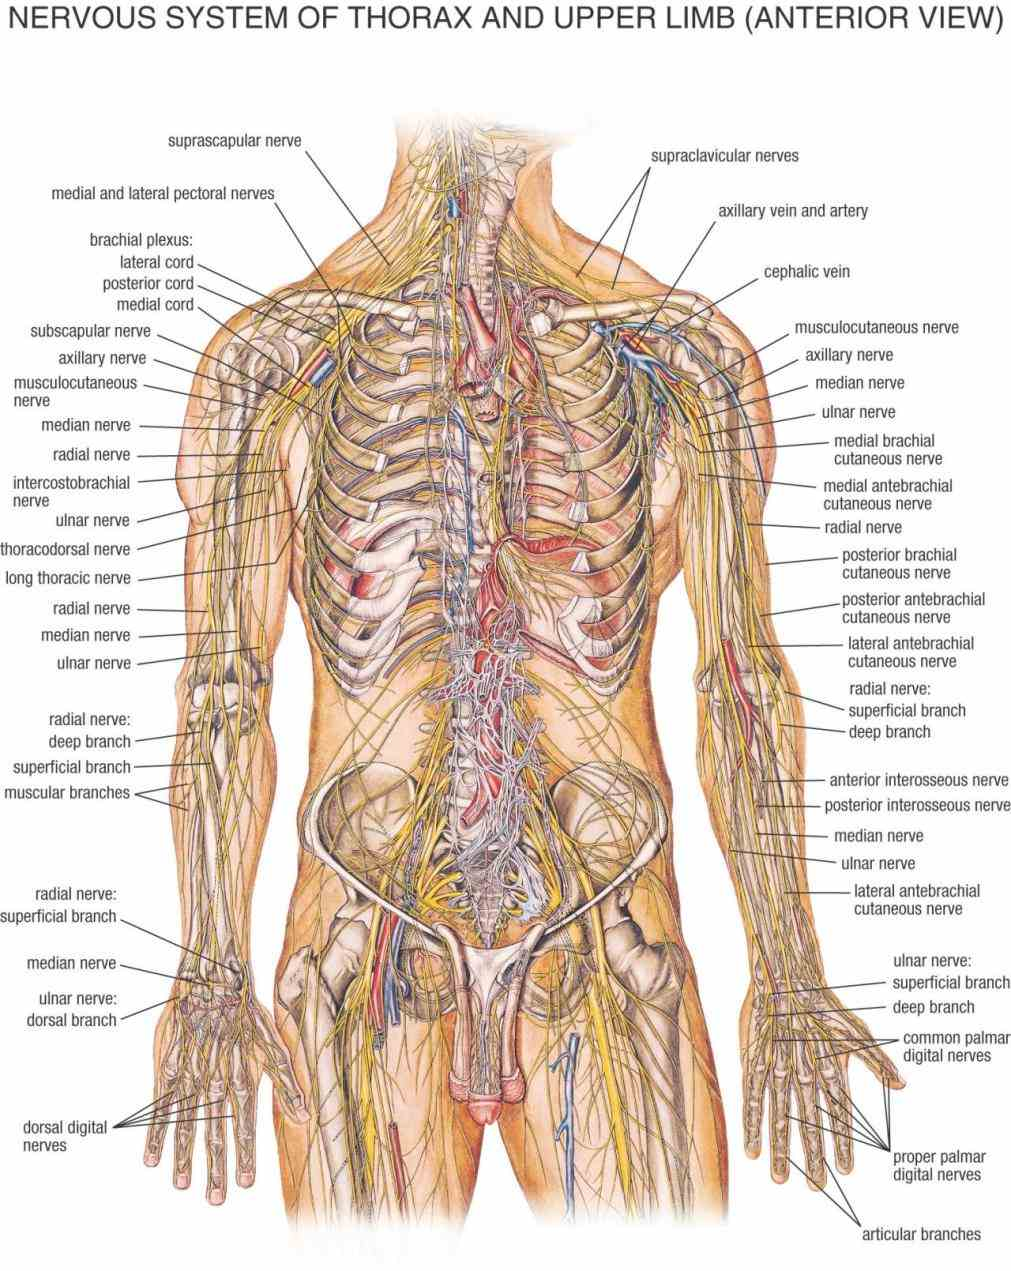 Anatomy All The Systems In The Human Body Pictures Wallpapers